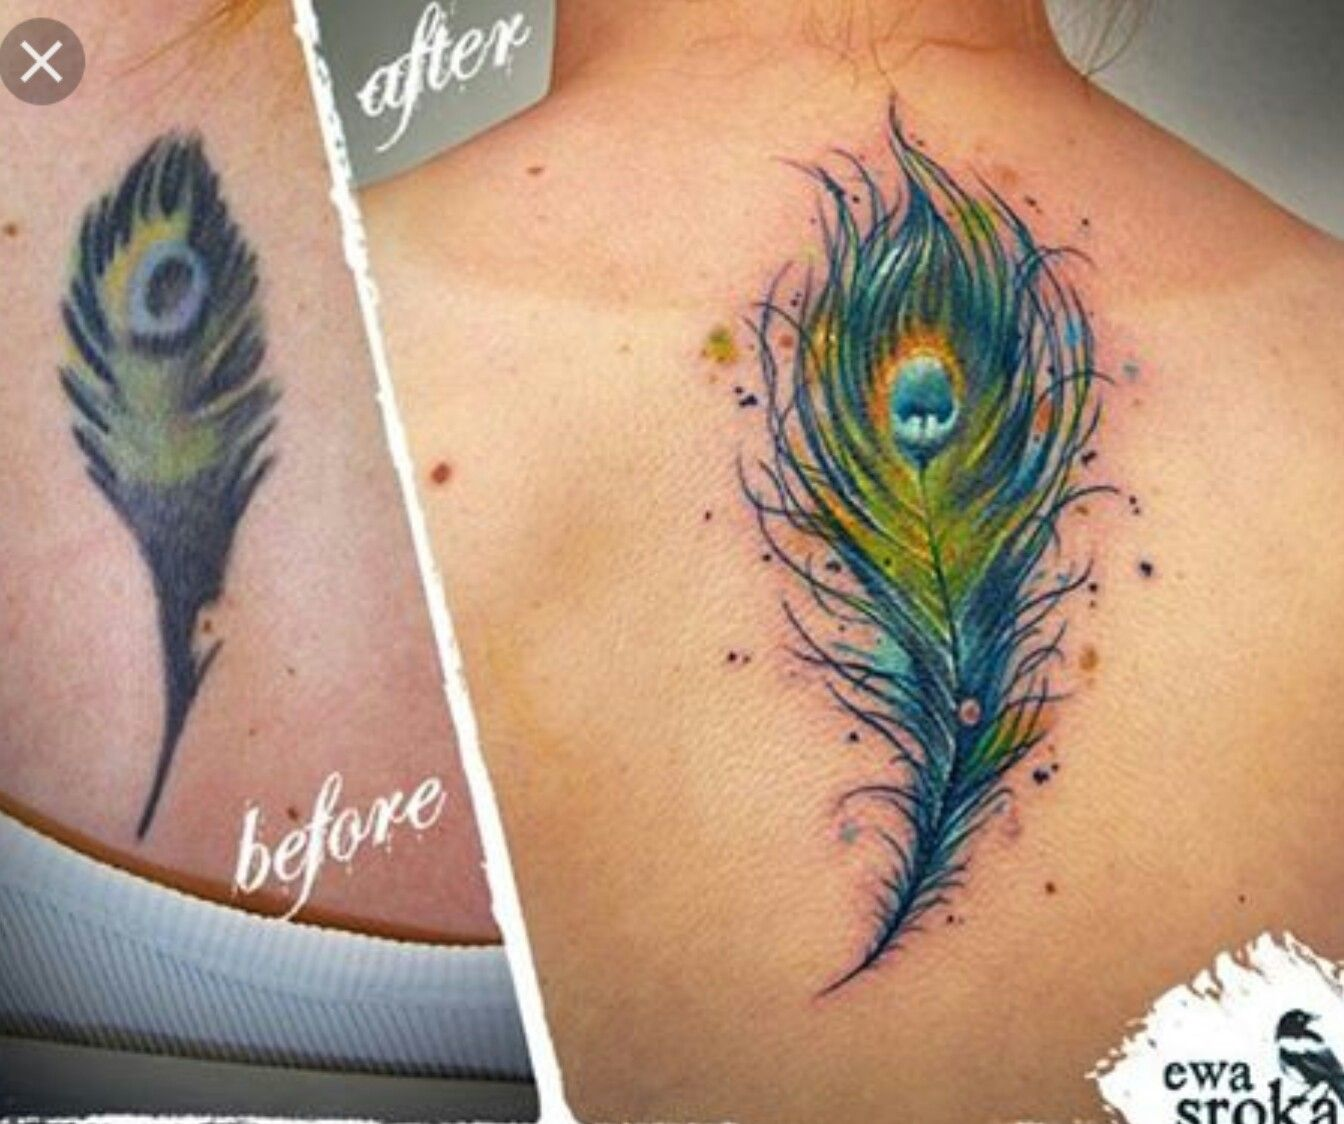 Tramp stamp cover up tattoo ideas pin by seagee mastro on things i love  pinterest  tattoo